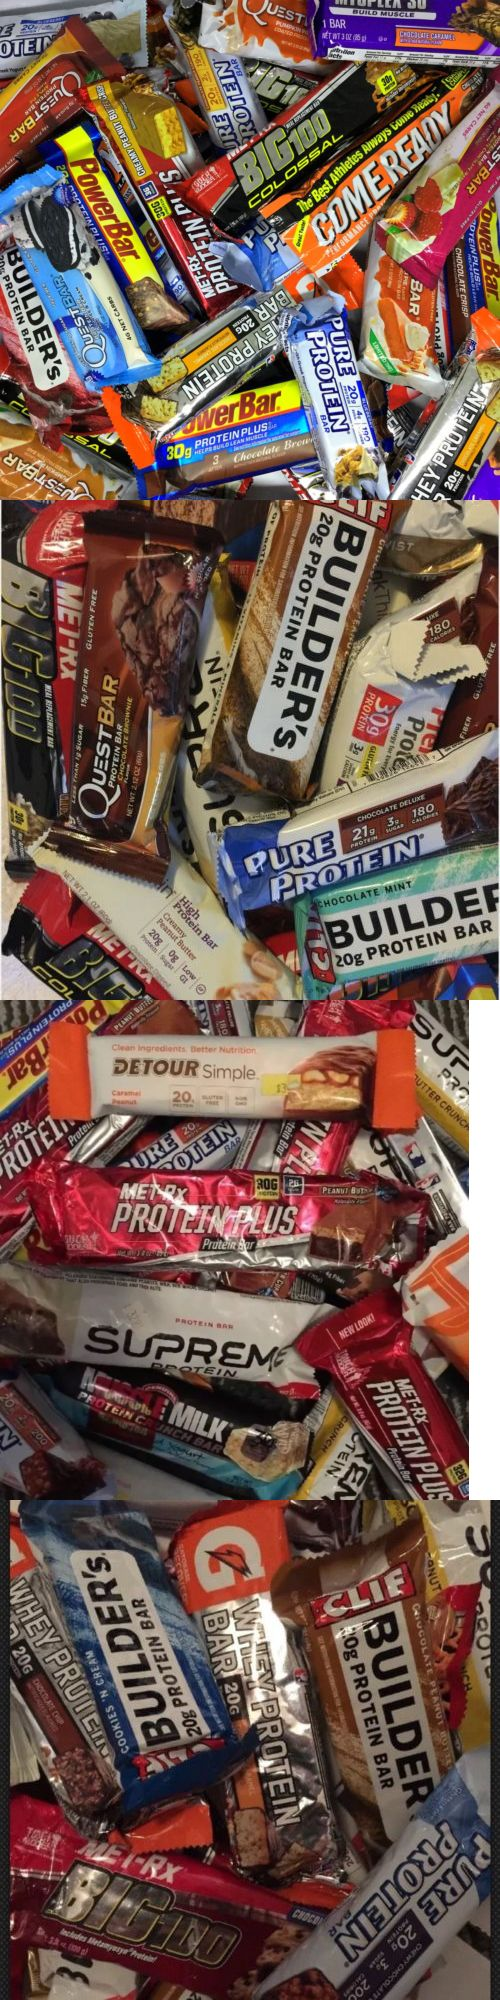 Energy Bars Shakes and Drinks: 30 Assorted Brand 20 - 32G Protein Bars Supreme Quest Met-Rx Clif Builder -> BUY IT NOW ONLY: $31.44 on eBay!